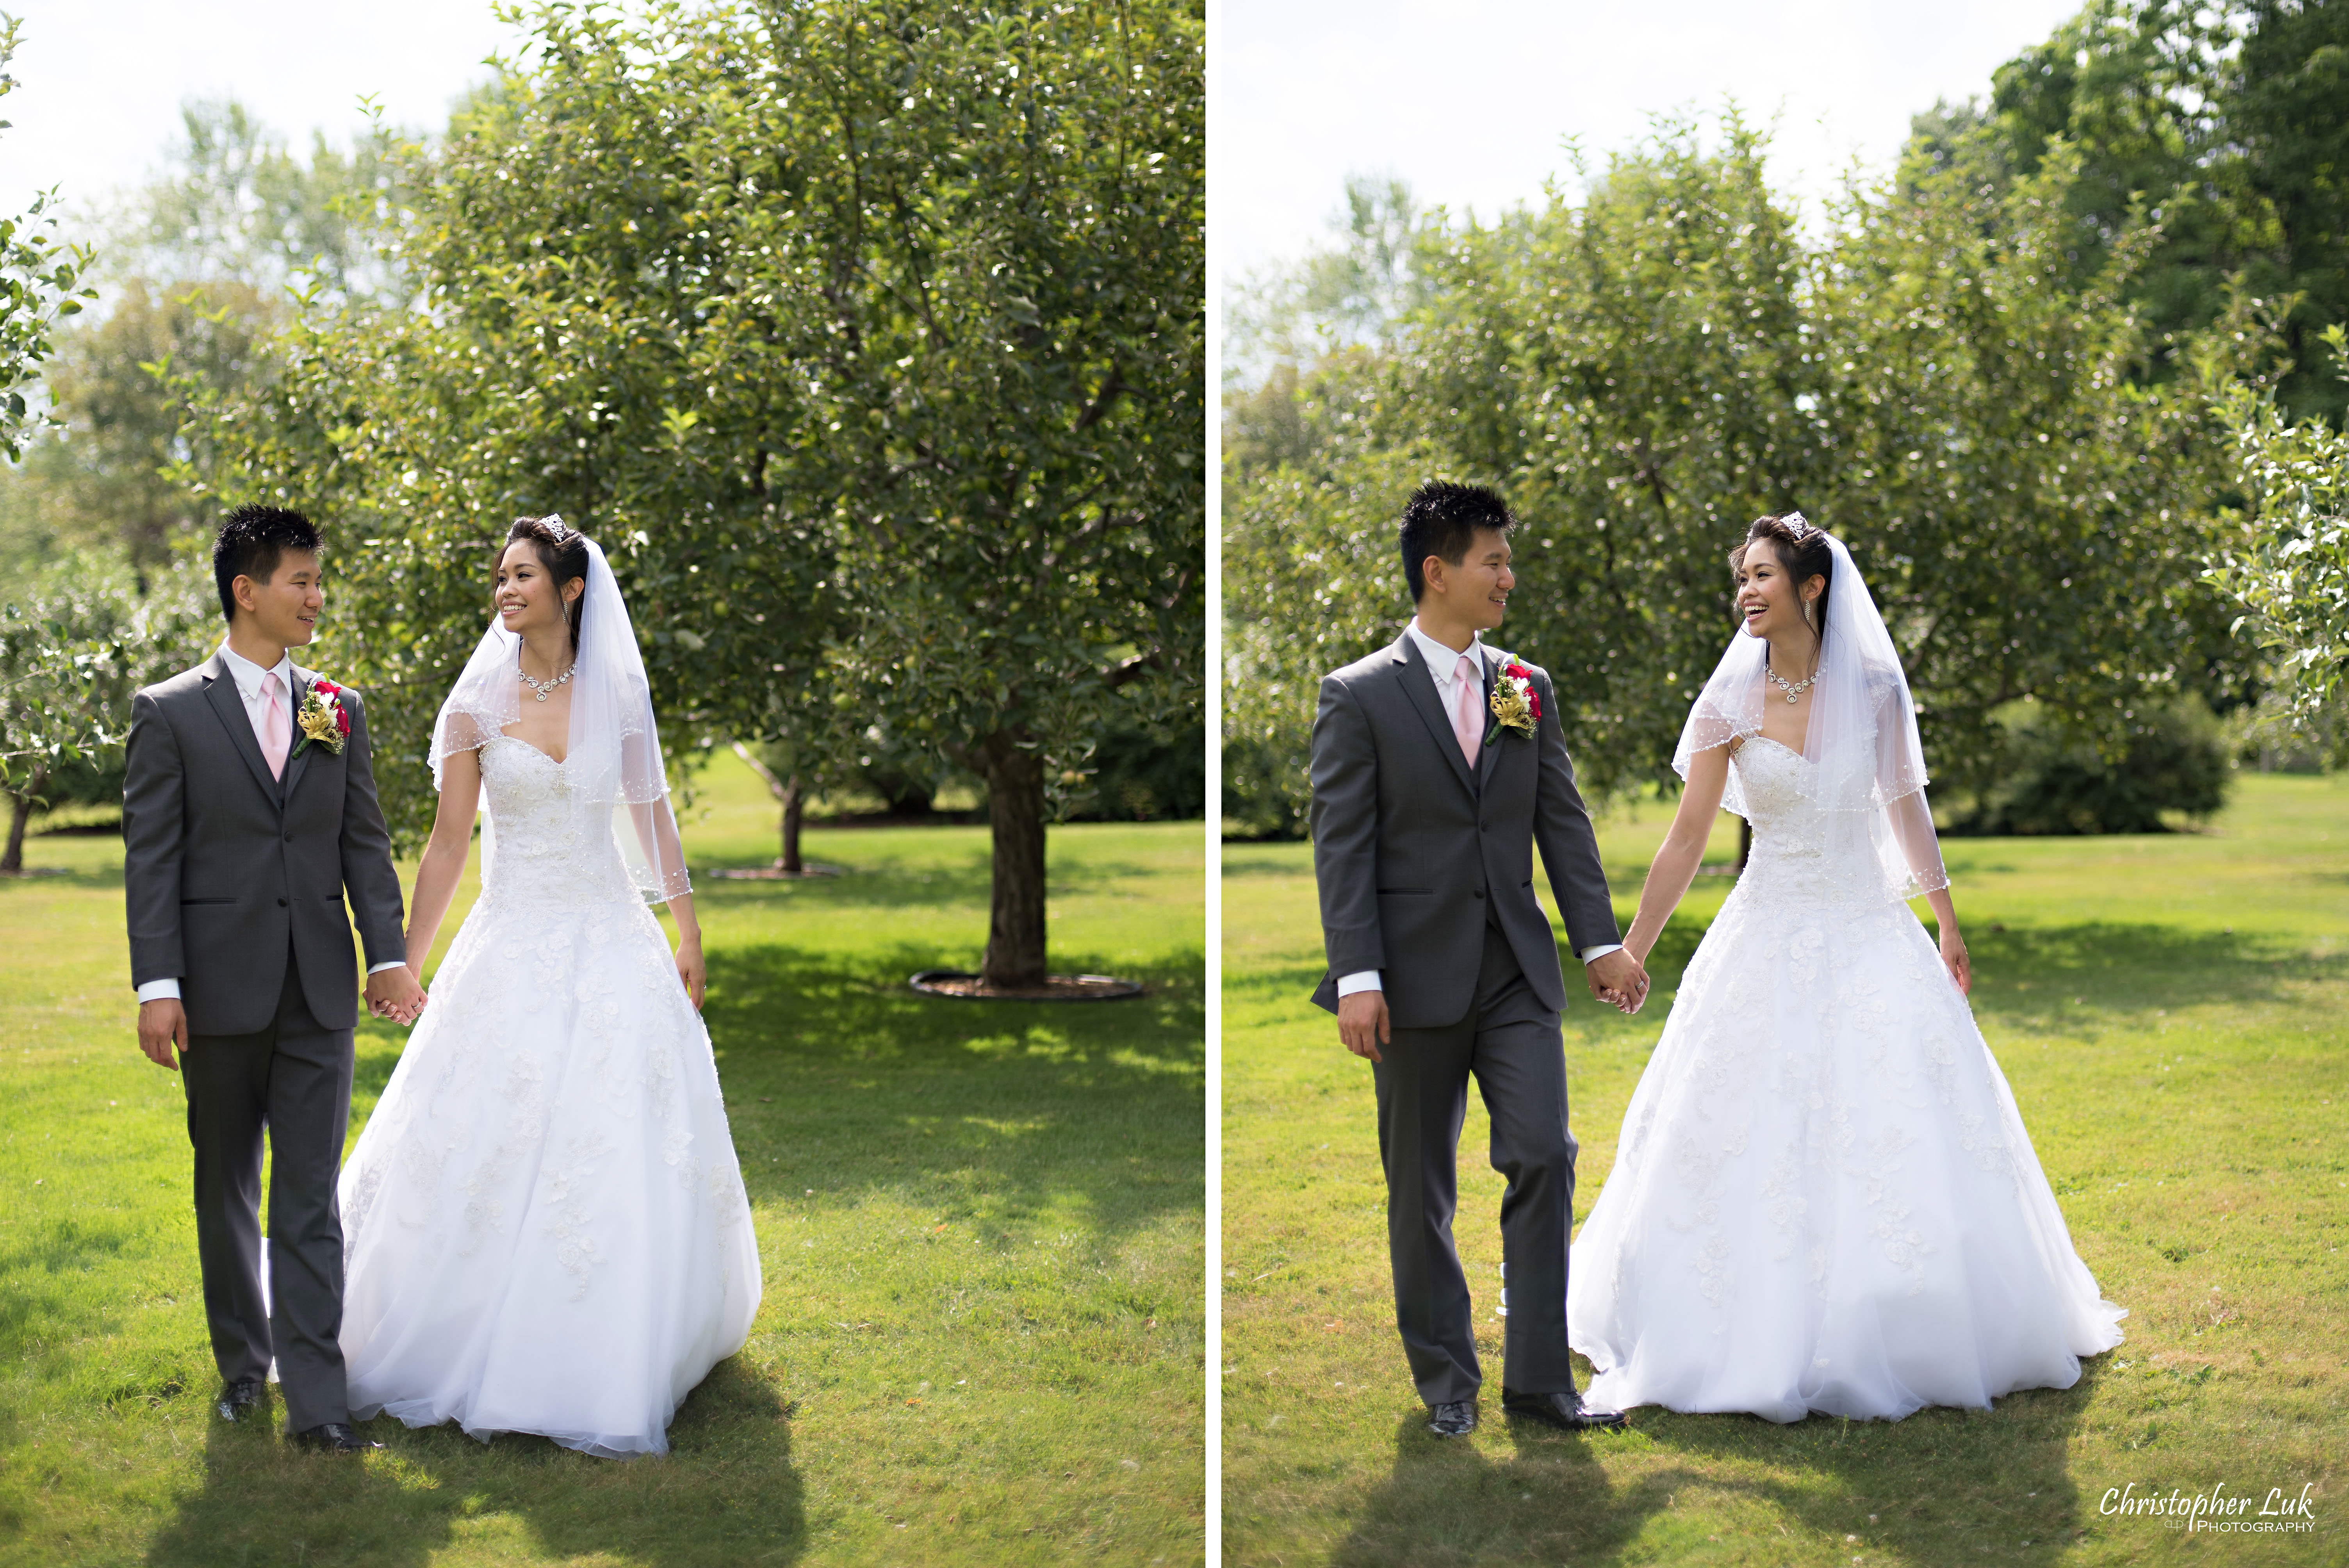 Christopher Luk 2015 - Shauna & Charles Wedding - Bride Groom Creative Relaxed Natural Portrait Session Photojournalistic Candid Walking Apple Trees